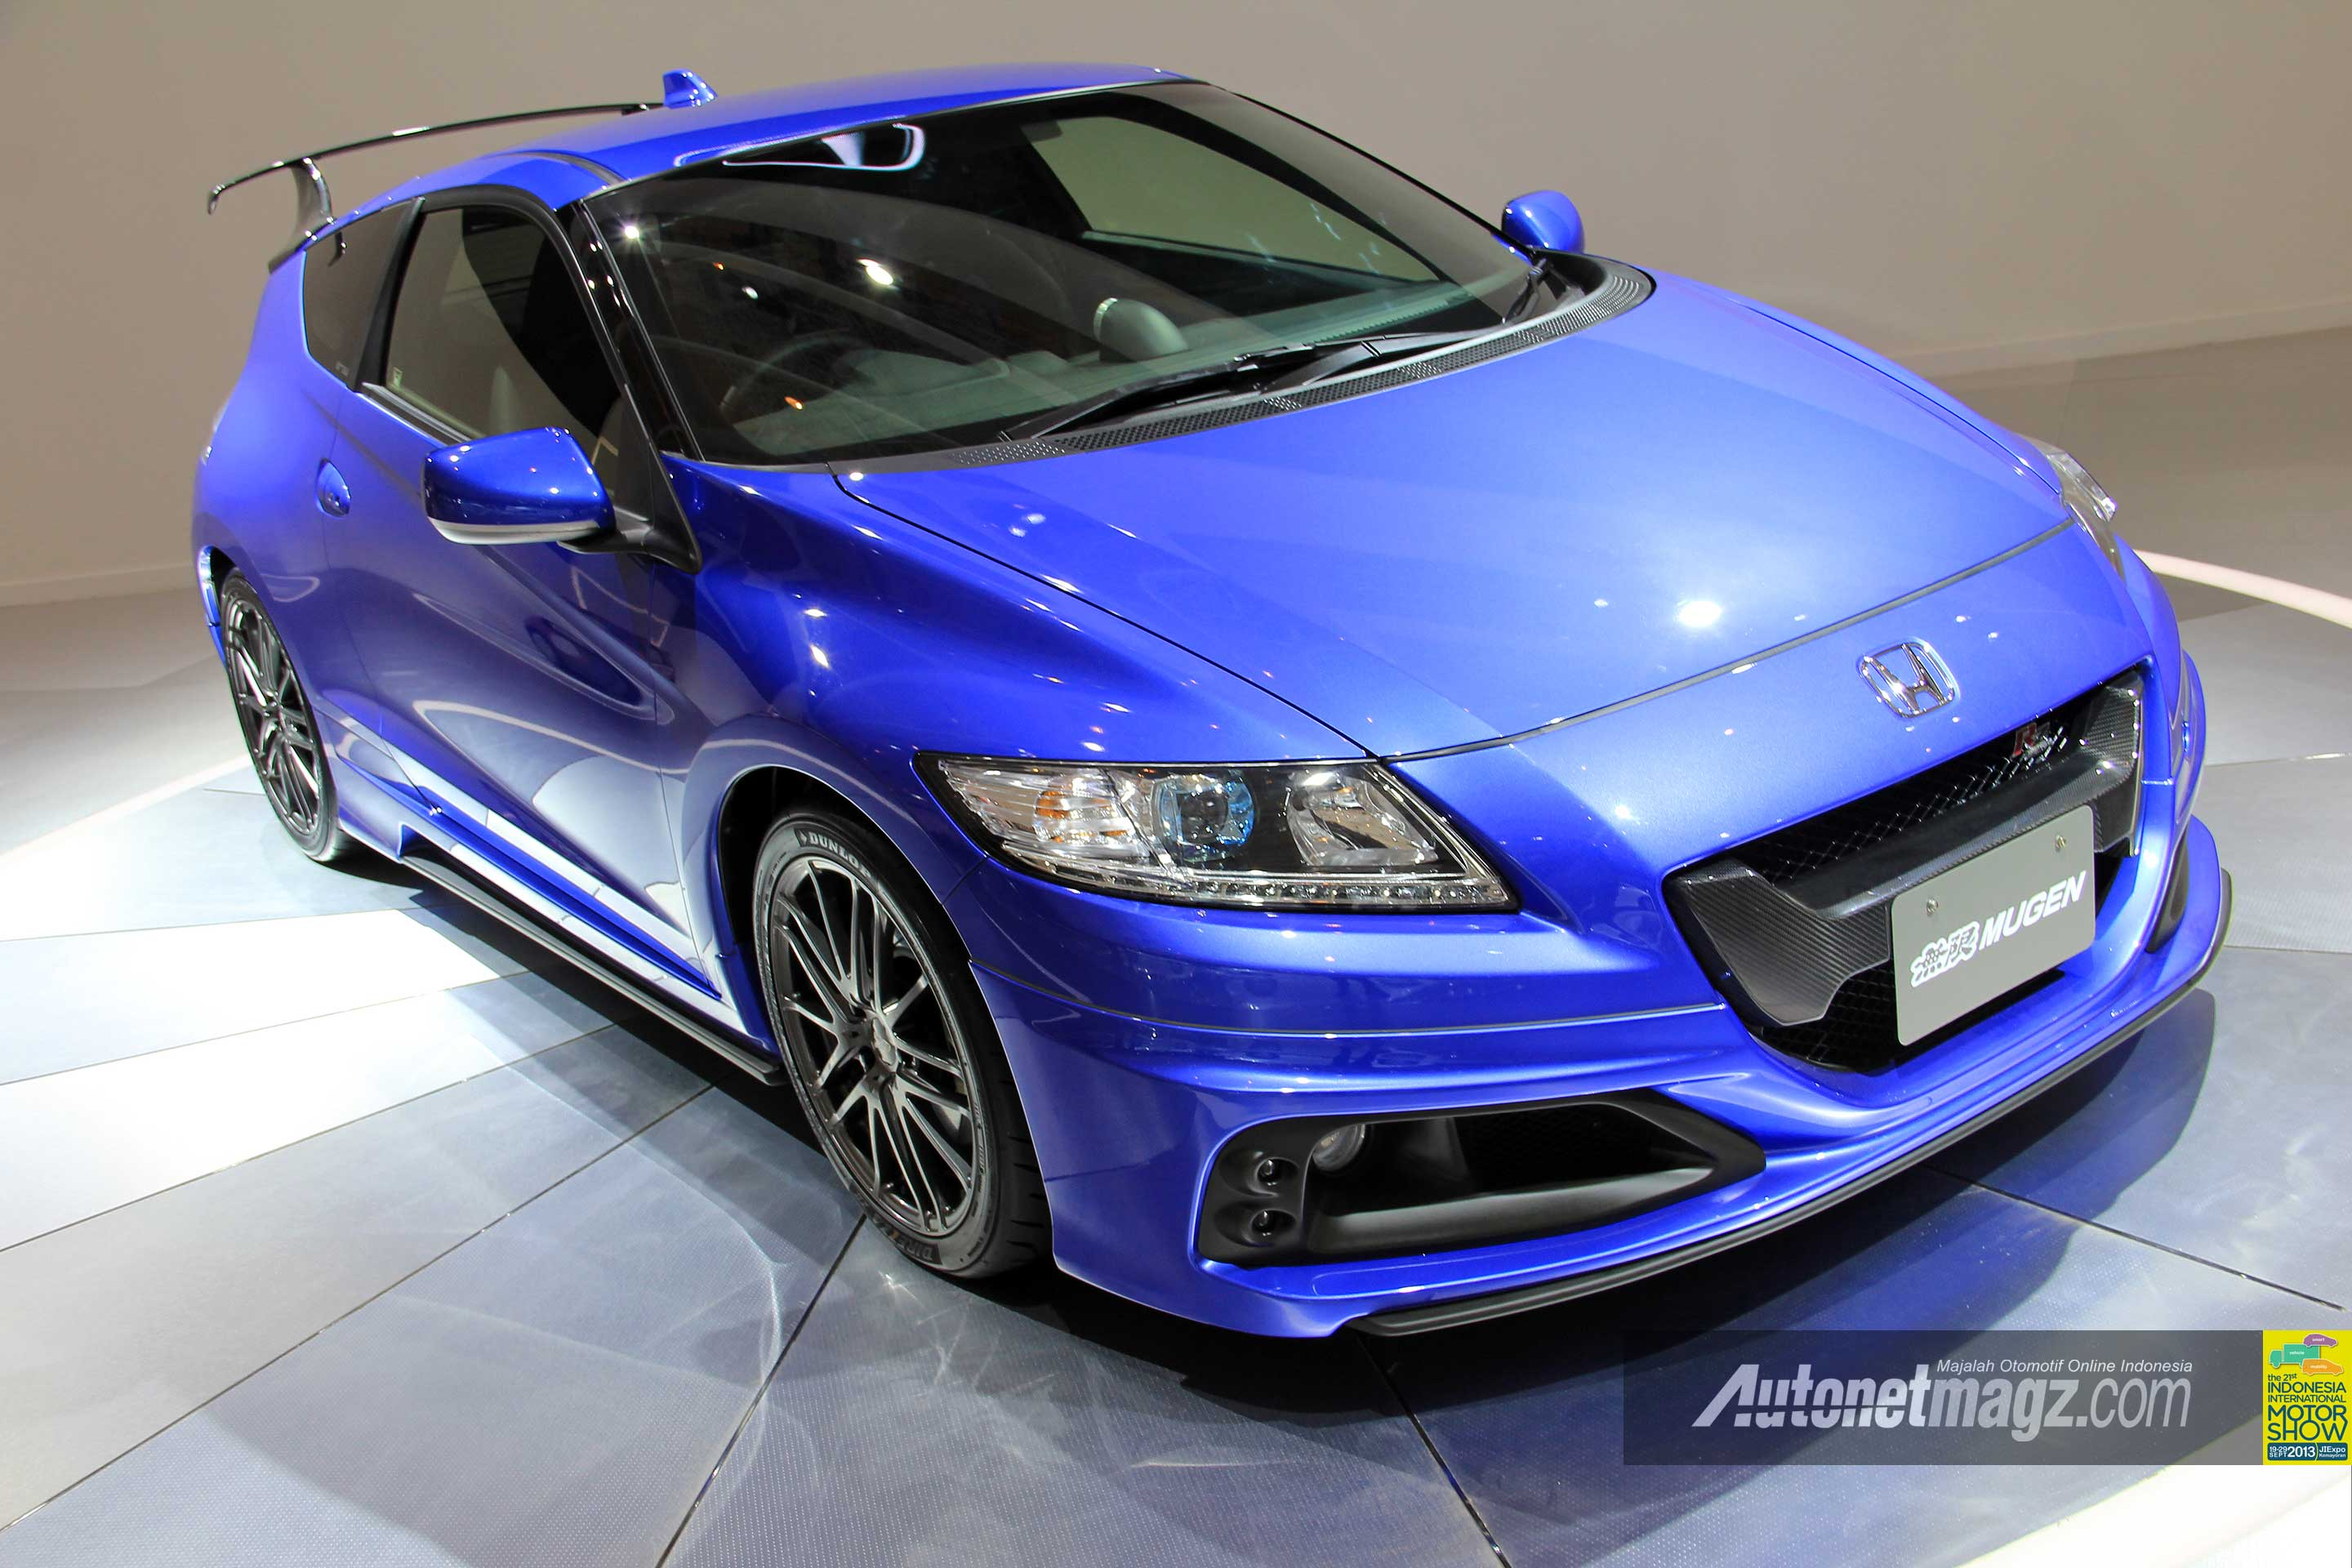 honda persiapkan cr z baru bermesin vtec turbo autonetmagz. Black Bedroom Furniture Sets. Home Design Ideas